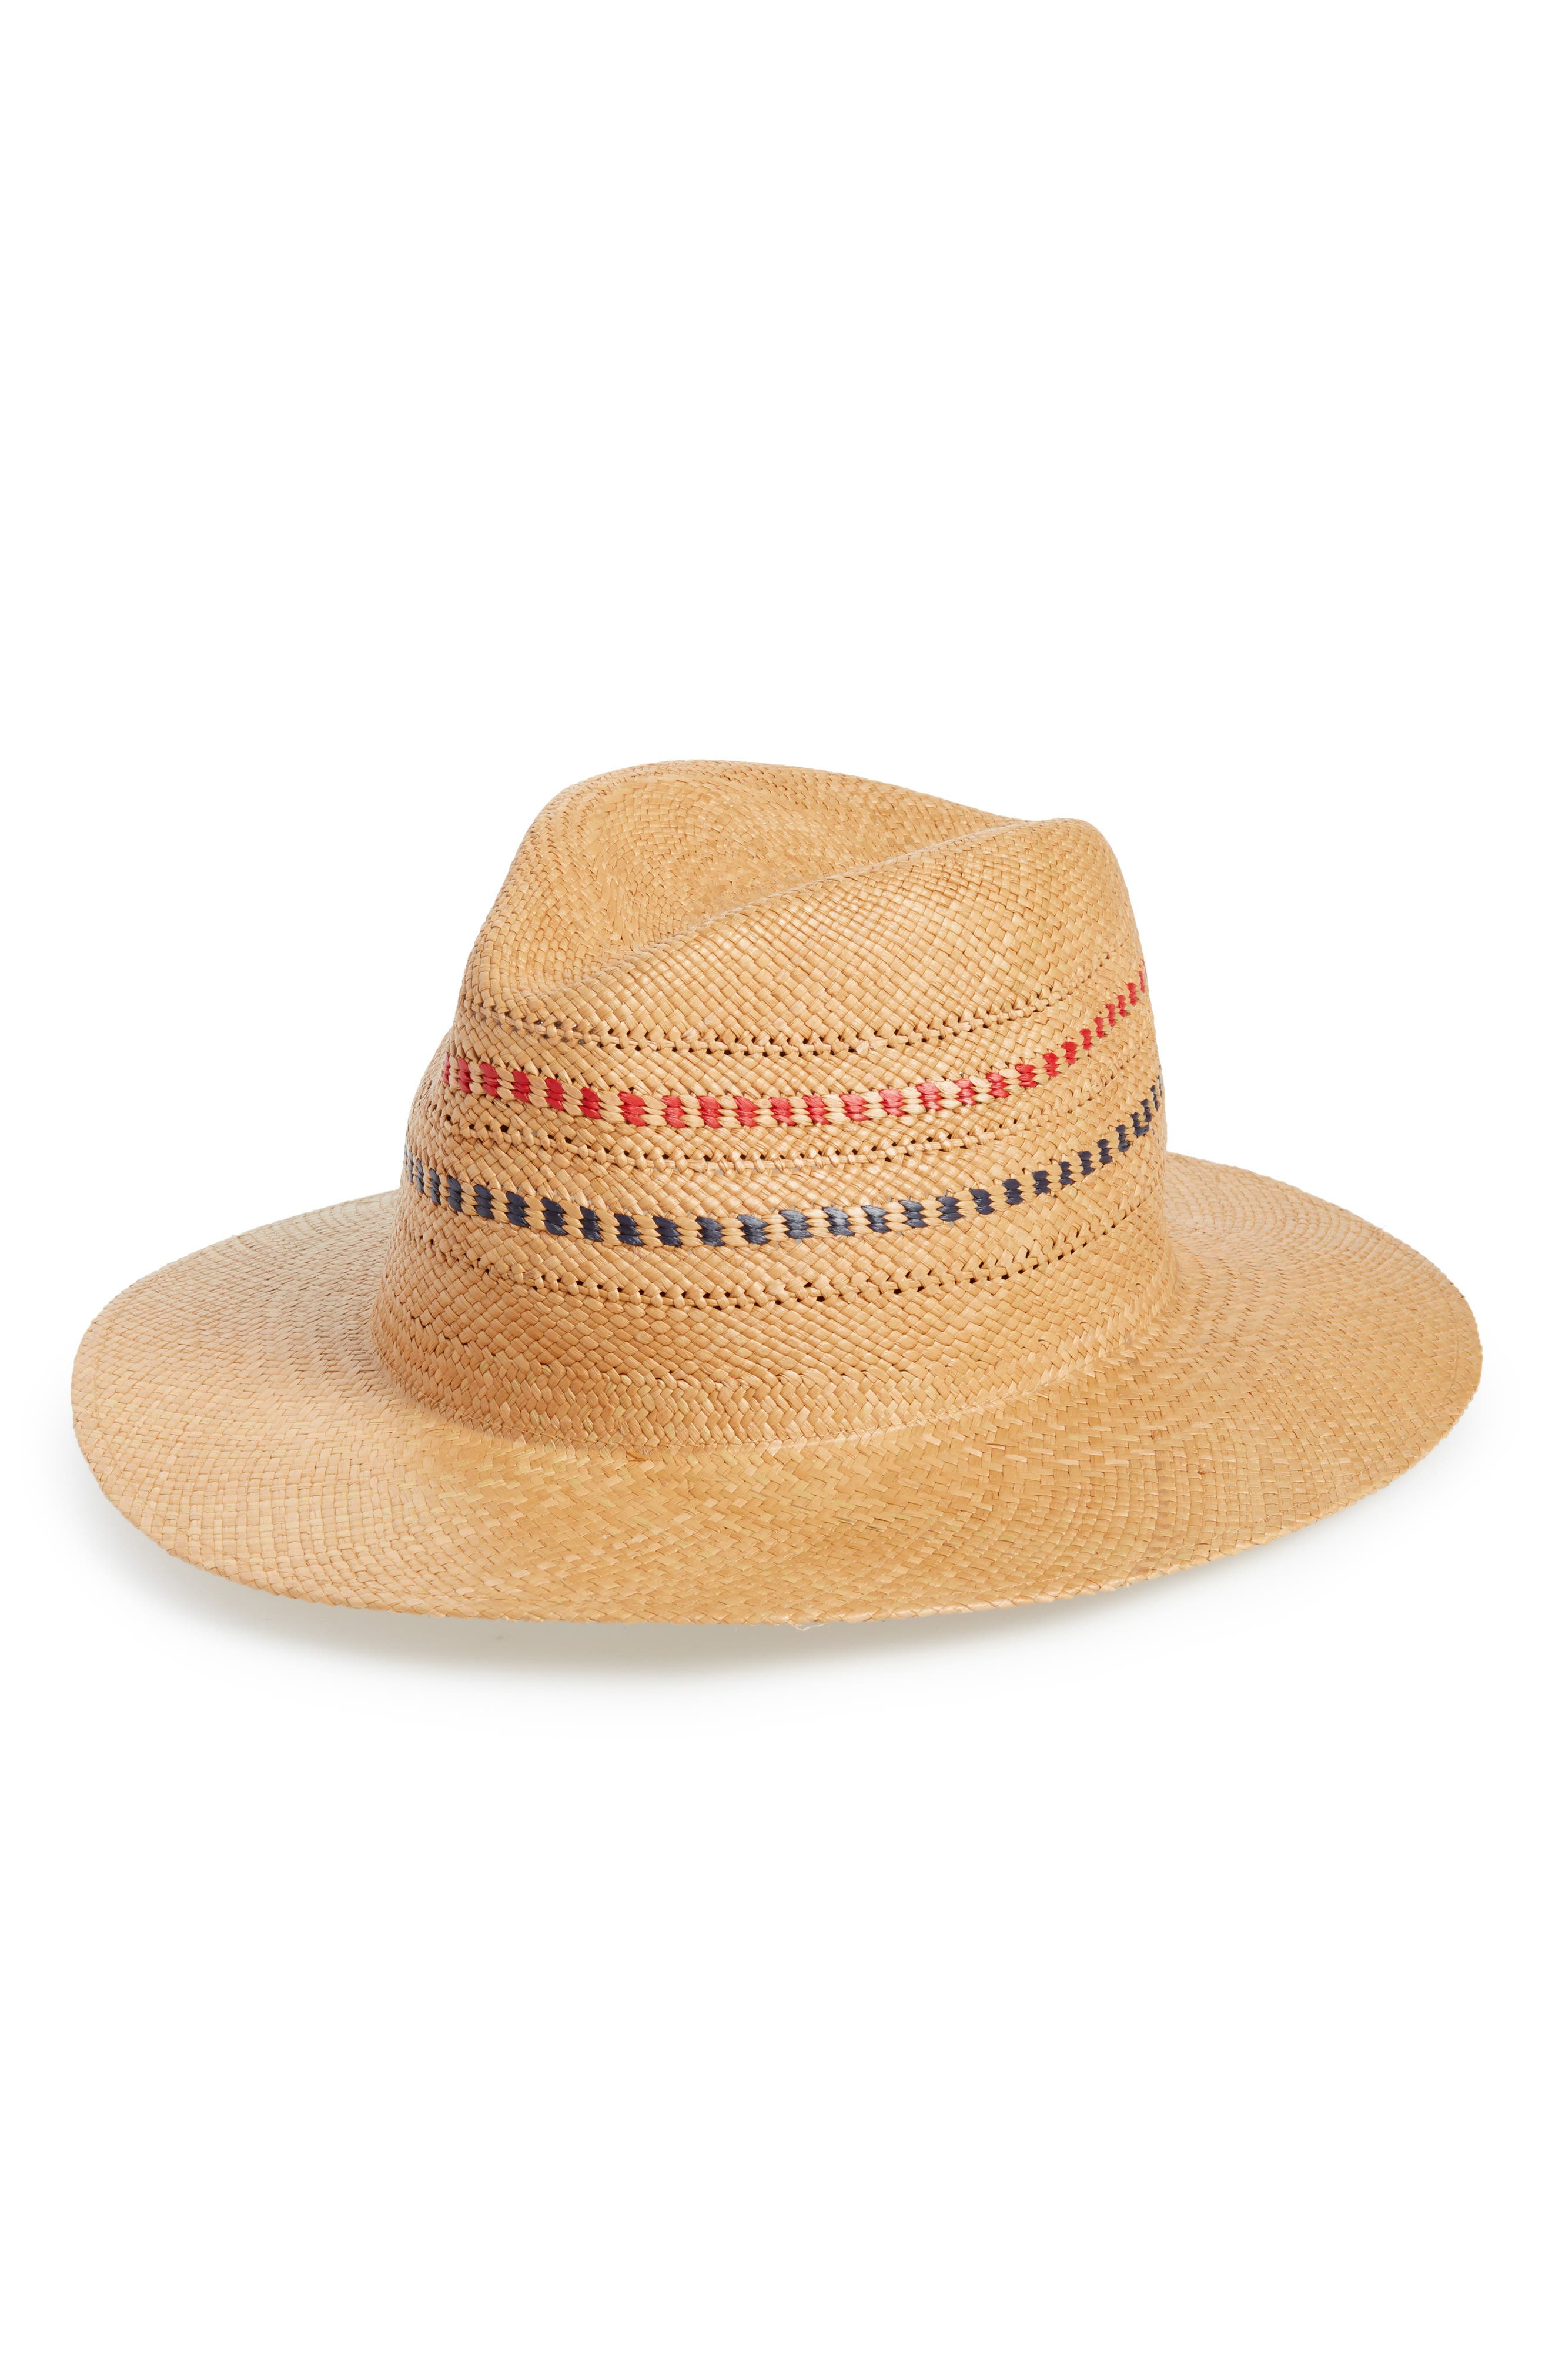 Panama Straw Hat,                         Main,                         color, RED/ BLUE MULTI